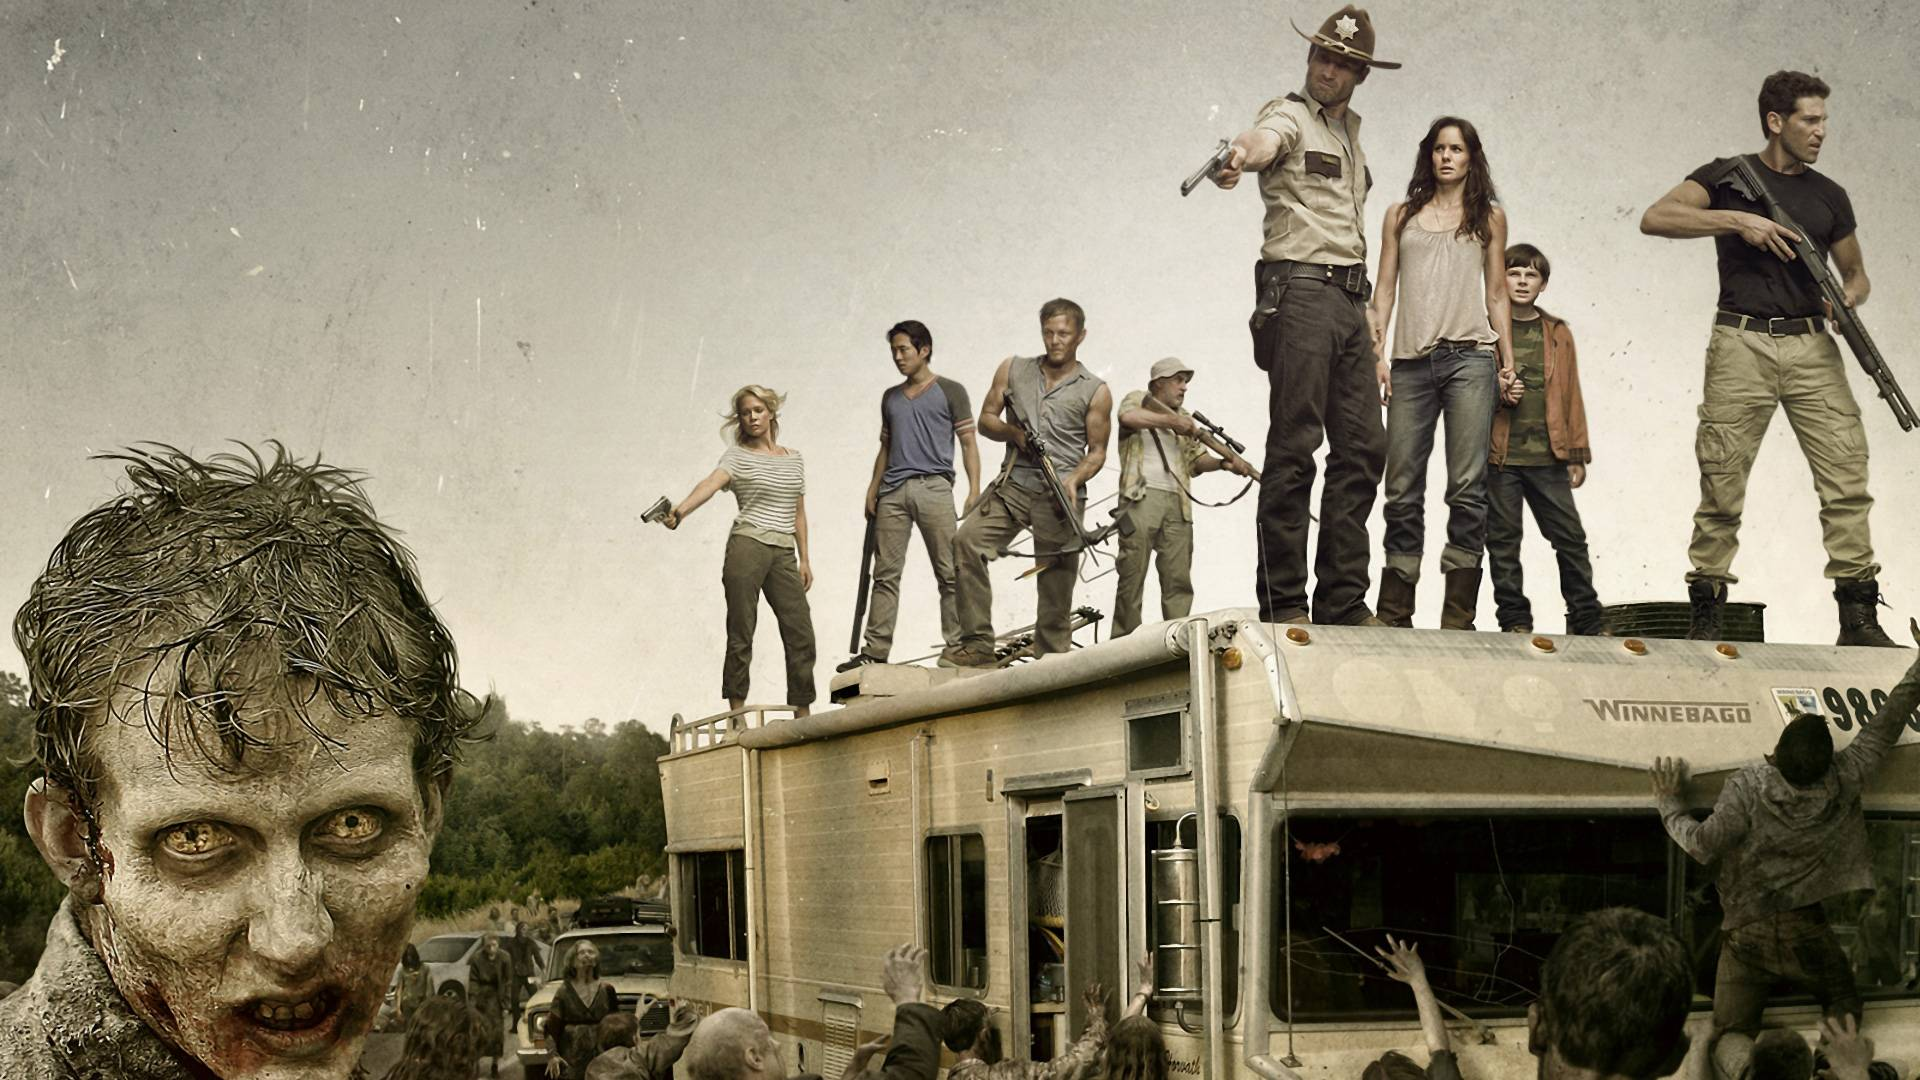 The walking dead wallpapers 1920x1080 wallpaper cave the walking dead the walking dead wallpaper voltagebd Choice Image